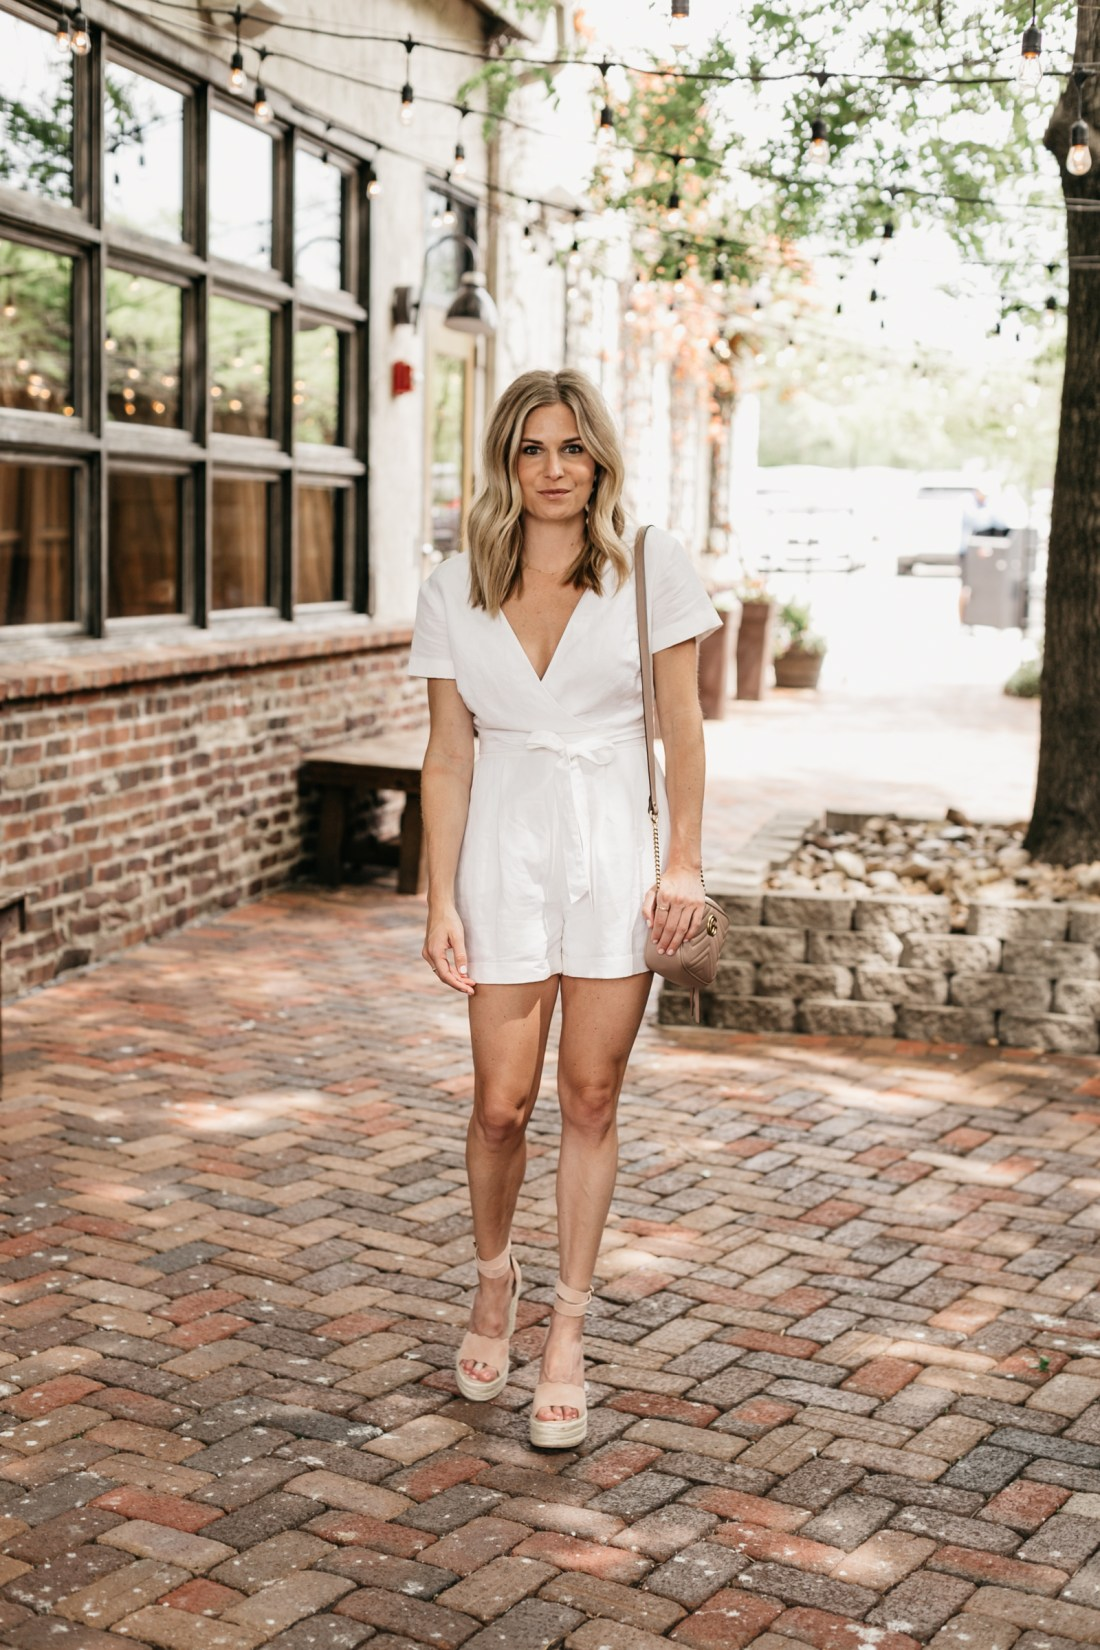 Brooke's outfit details: White Tie Waist Romper // Scalloped Nude Wedges // Gucci Crossbody